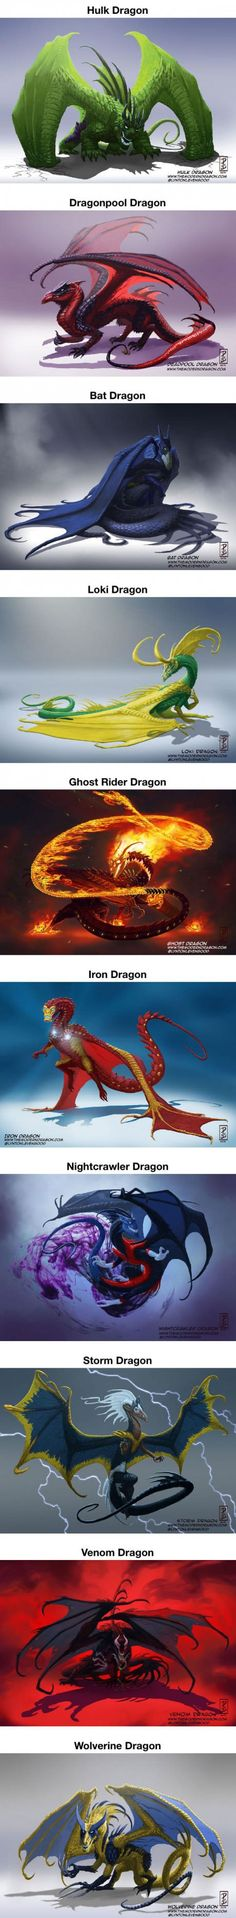 Re-Imagined Popular Comic Characters As Dragons<<< The fact that there's only one DC character tho XD